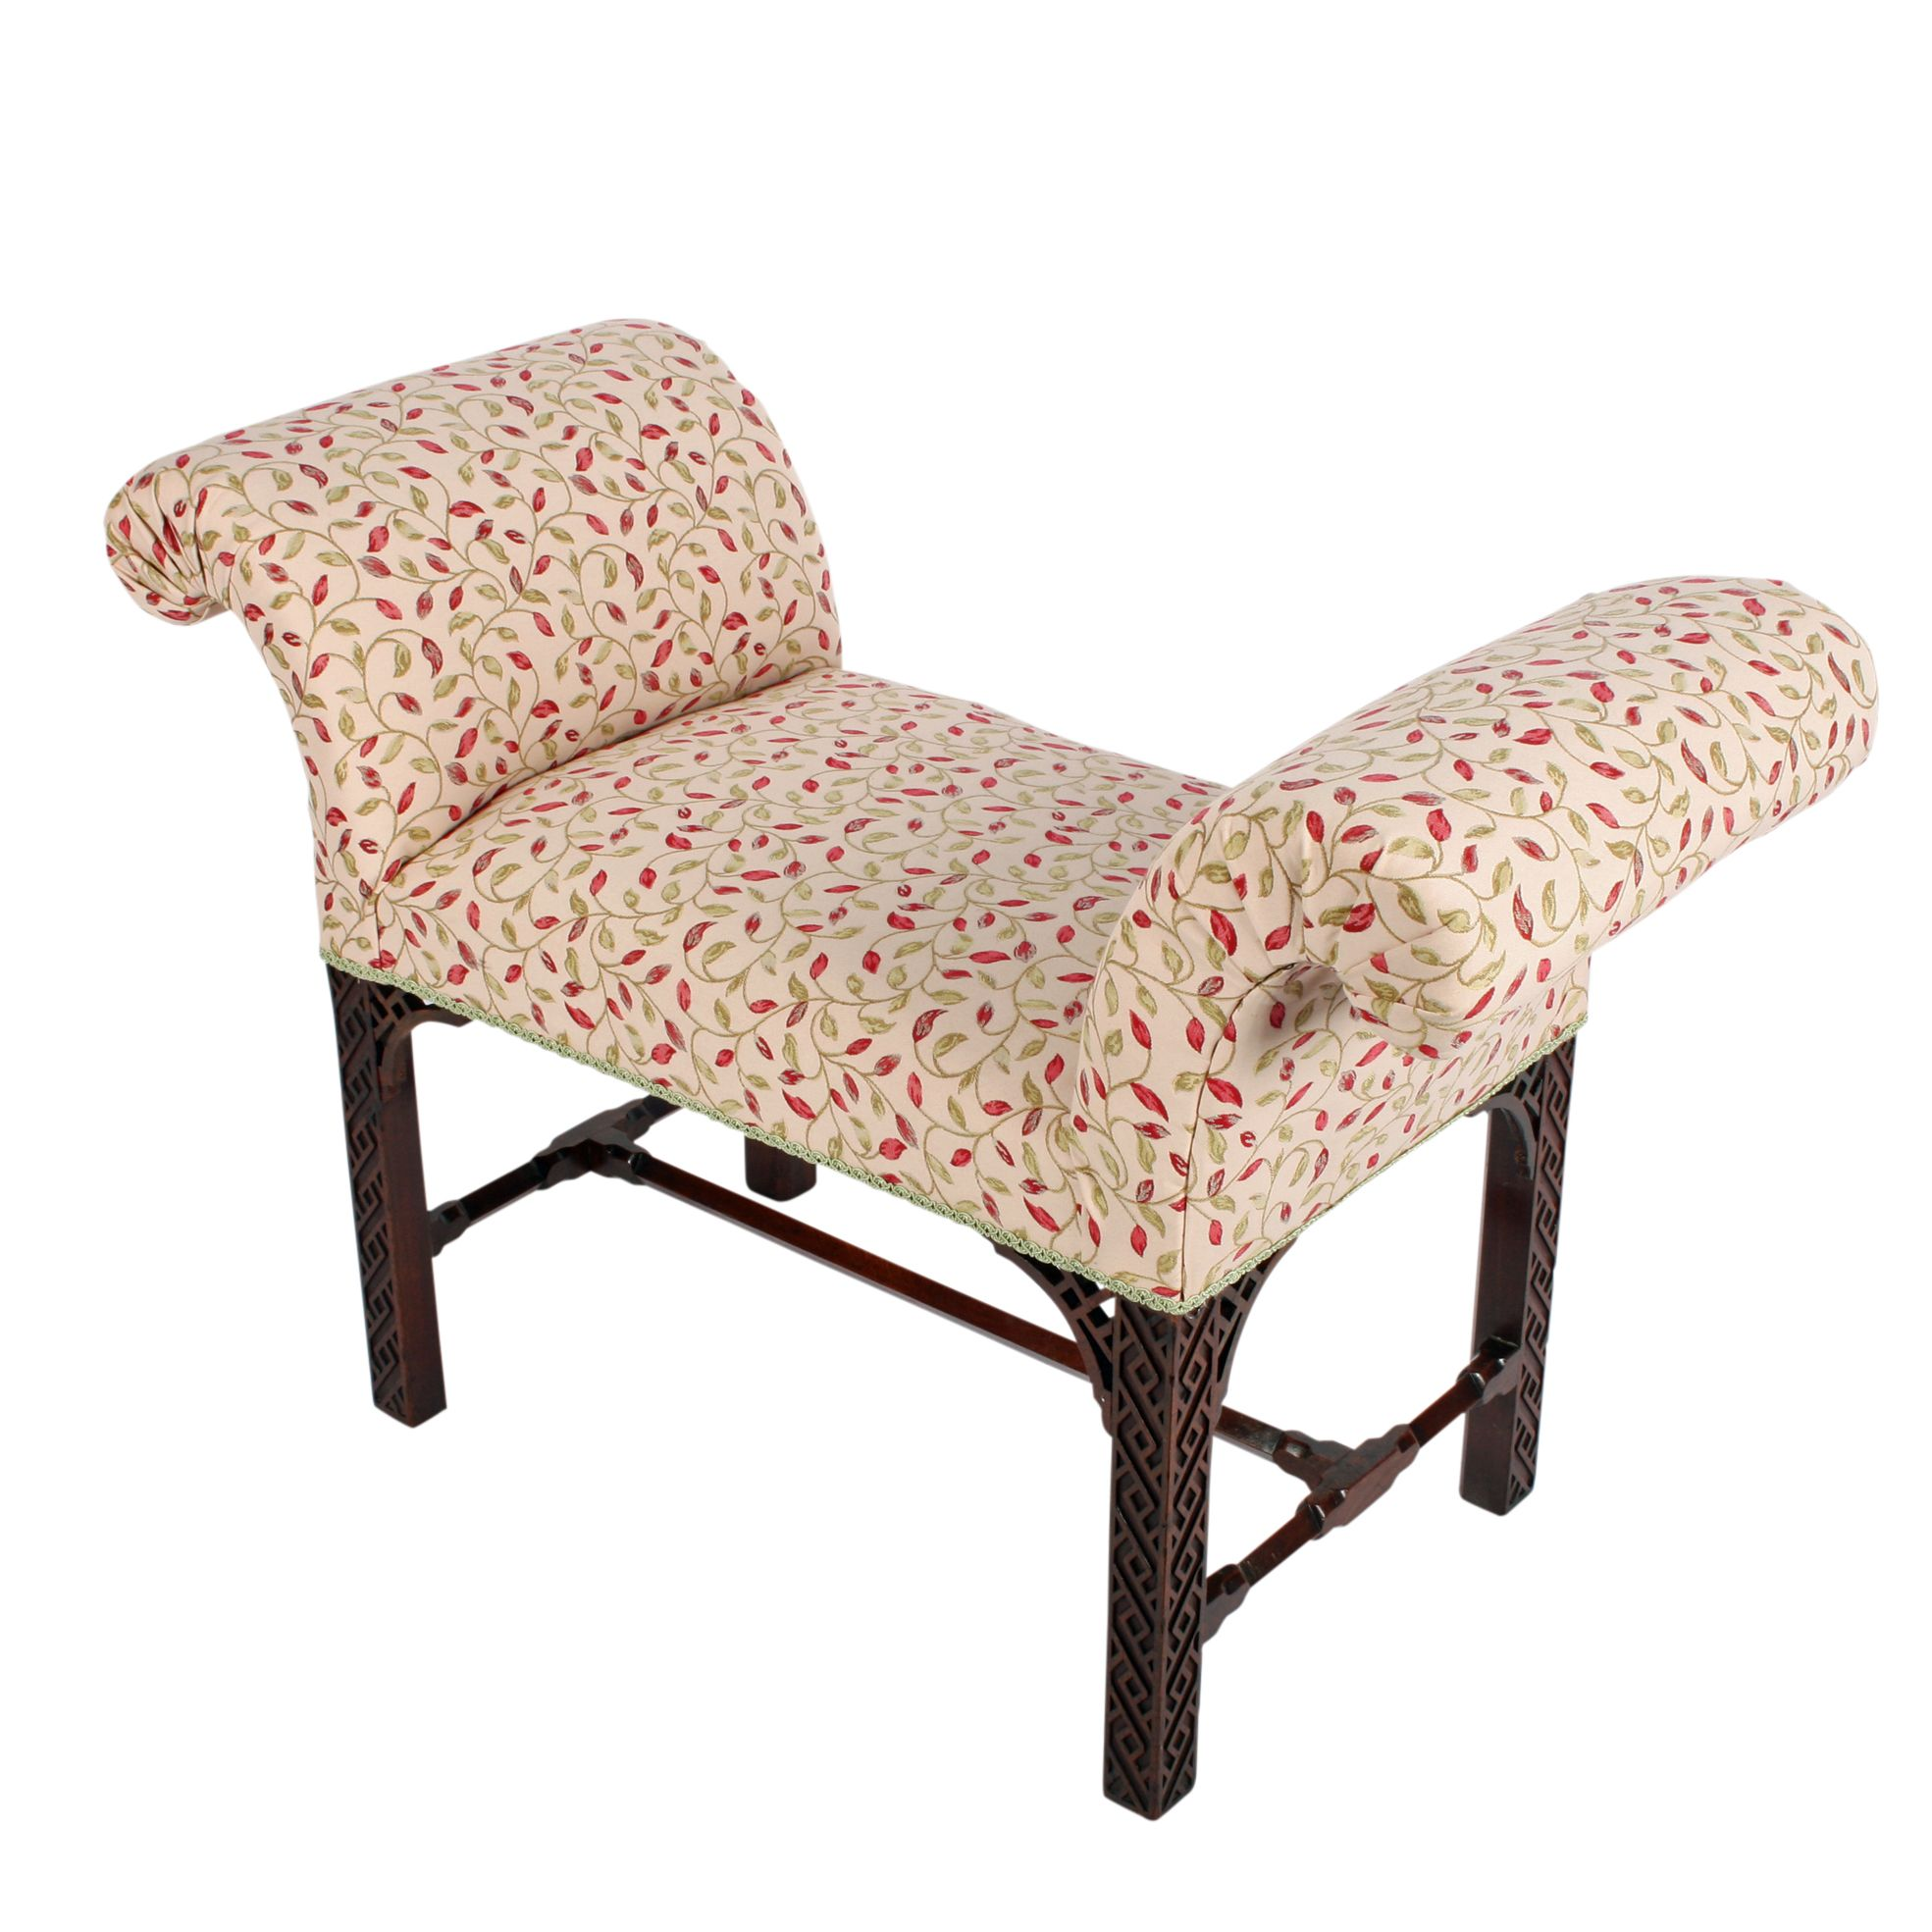 Chippendale Mahogany Window Seat Antique Bedroom Furniture Antique Chairs Furniture